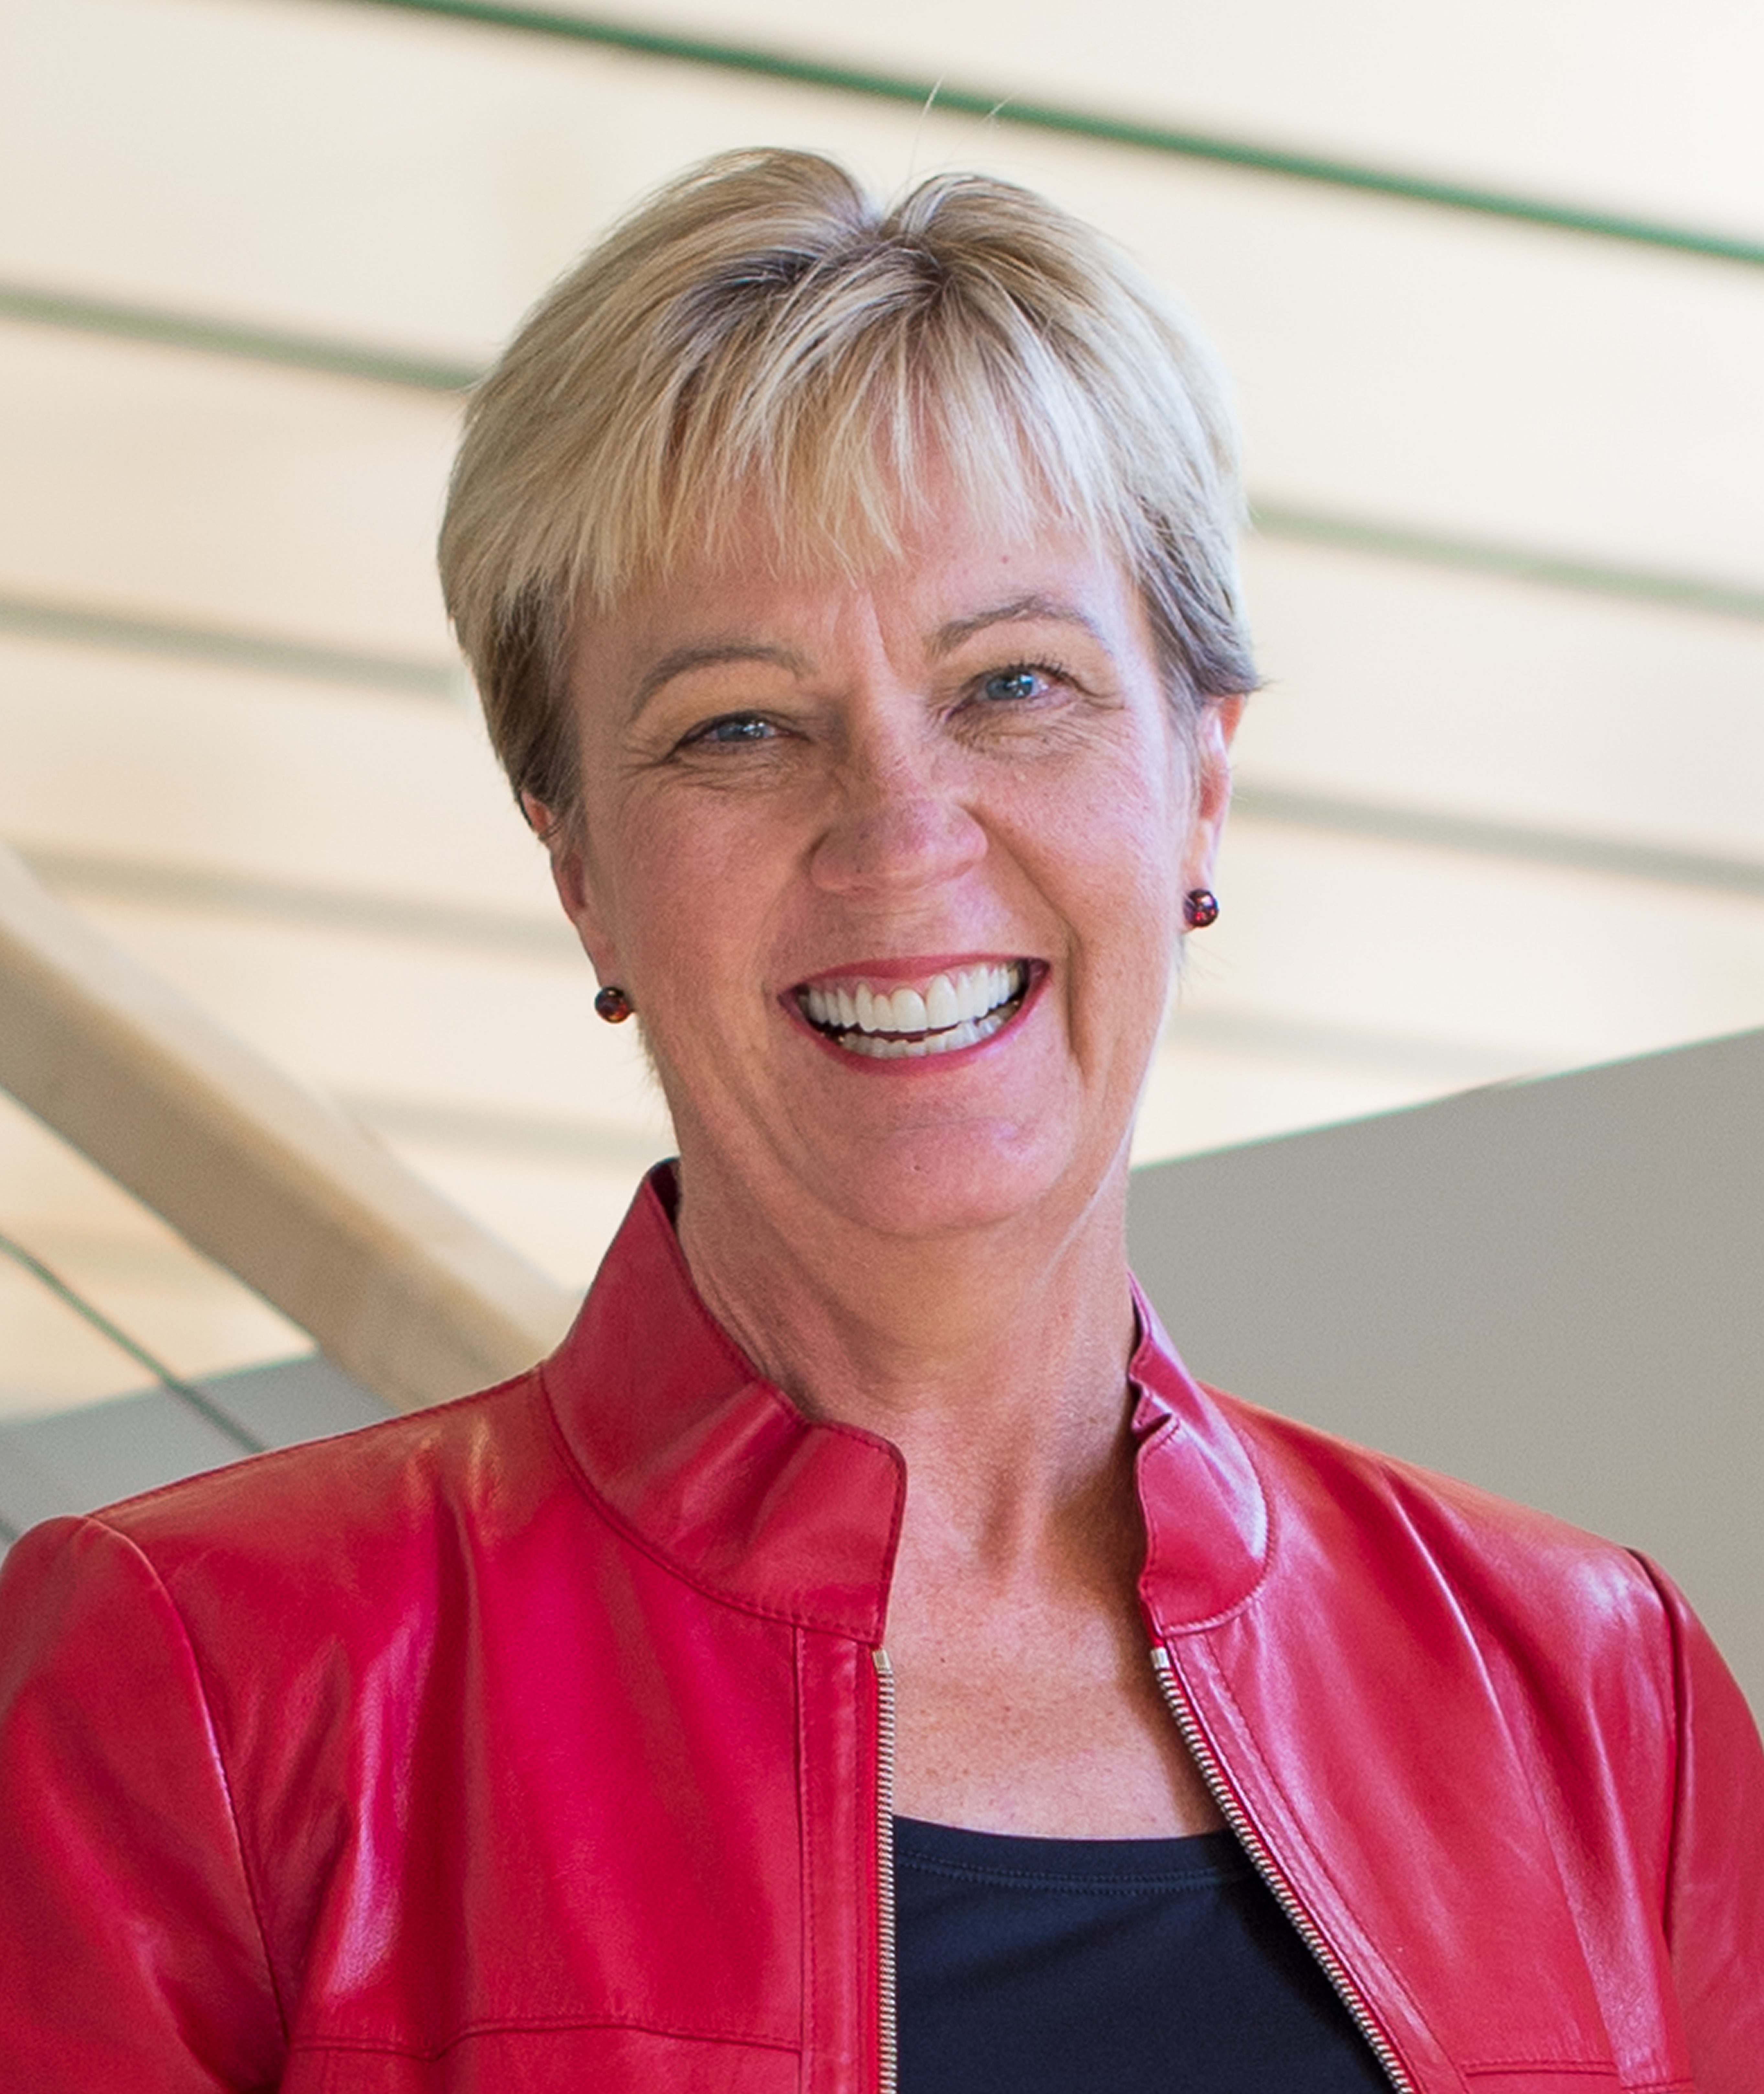 Caryn L. Beck-Dudley | Dean of the Leavey School of Business, Santa Clara University